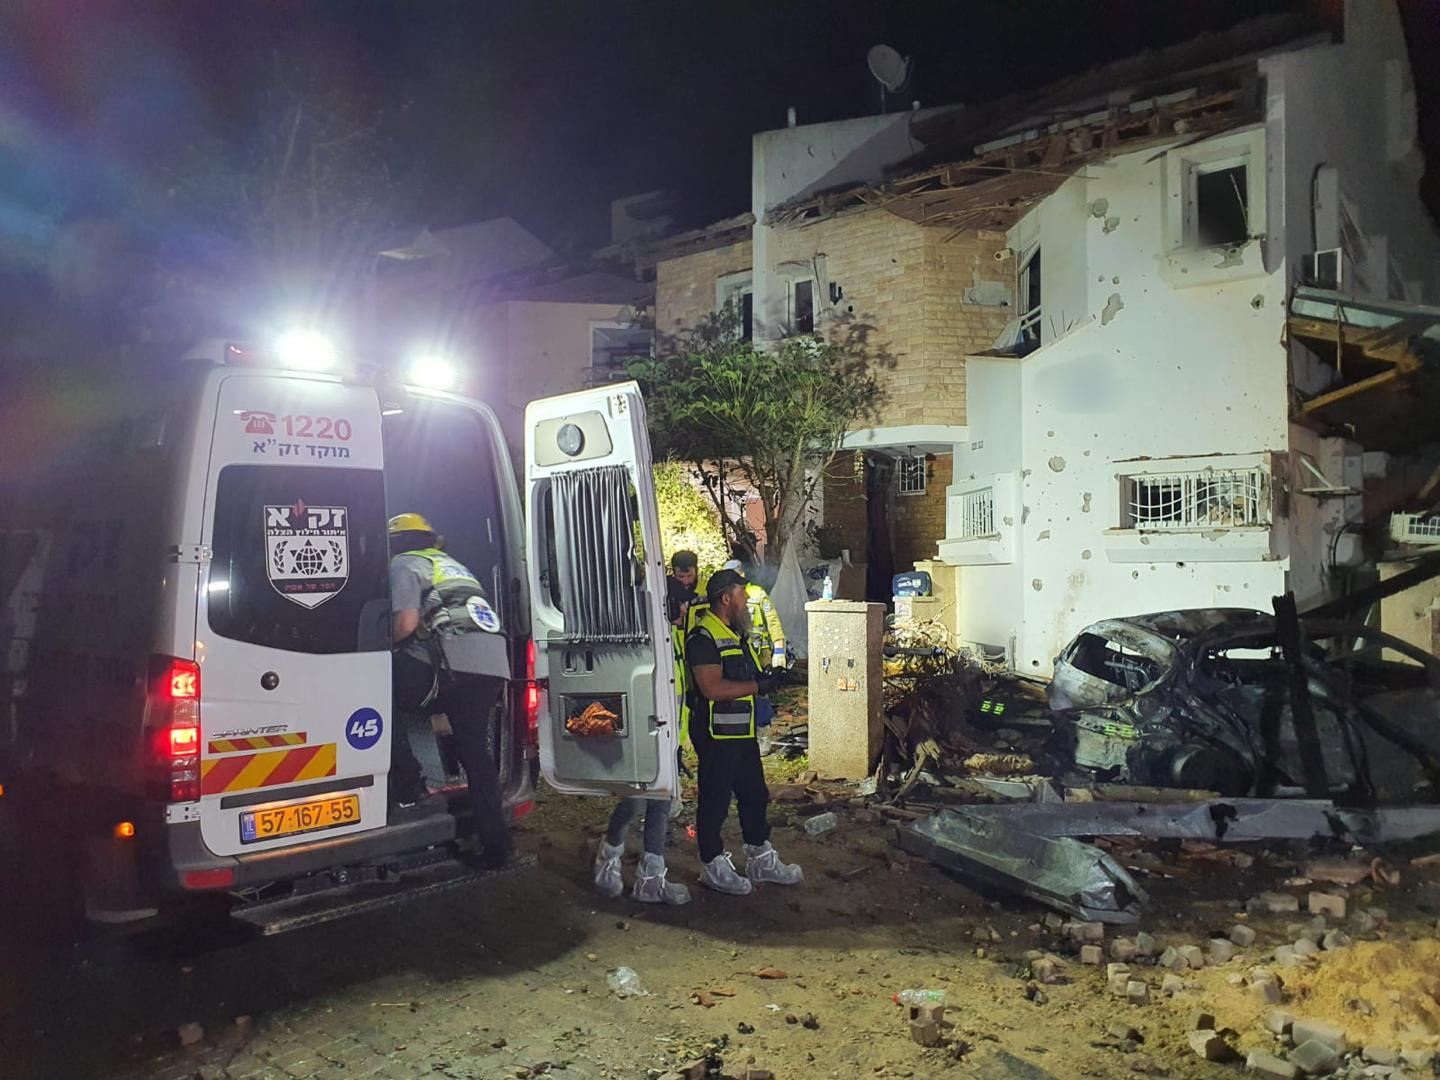 An Israeli emergency crew at the site of a rocket attack in Rishon Lezion that left one person dead. (Photo/Courtesy ZAKA)